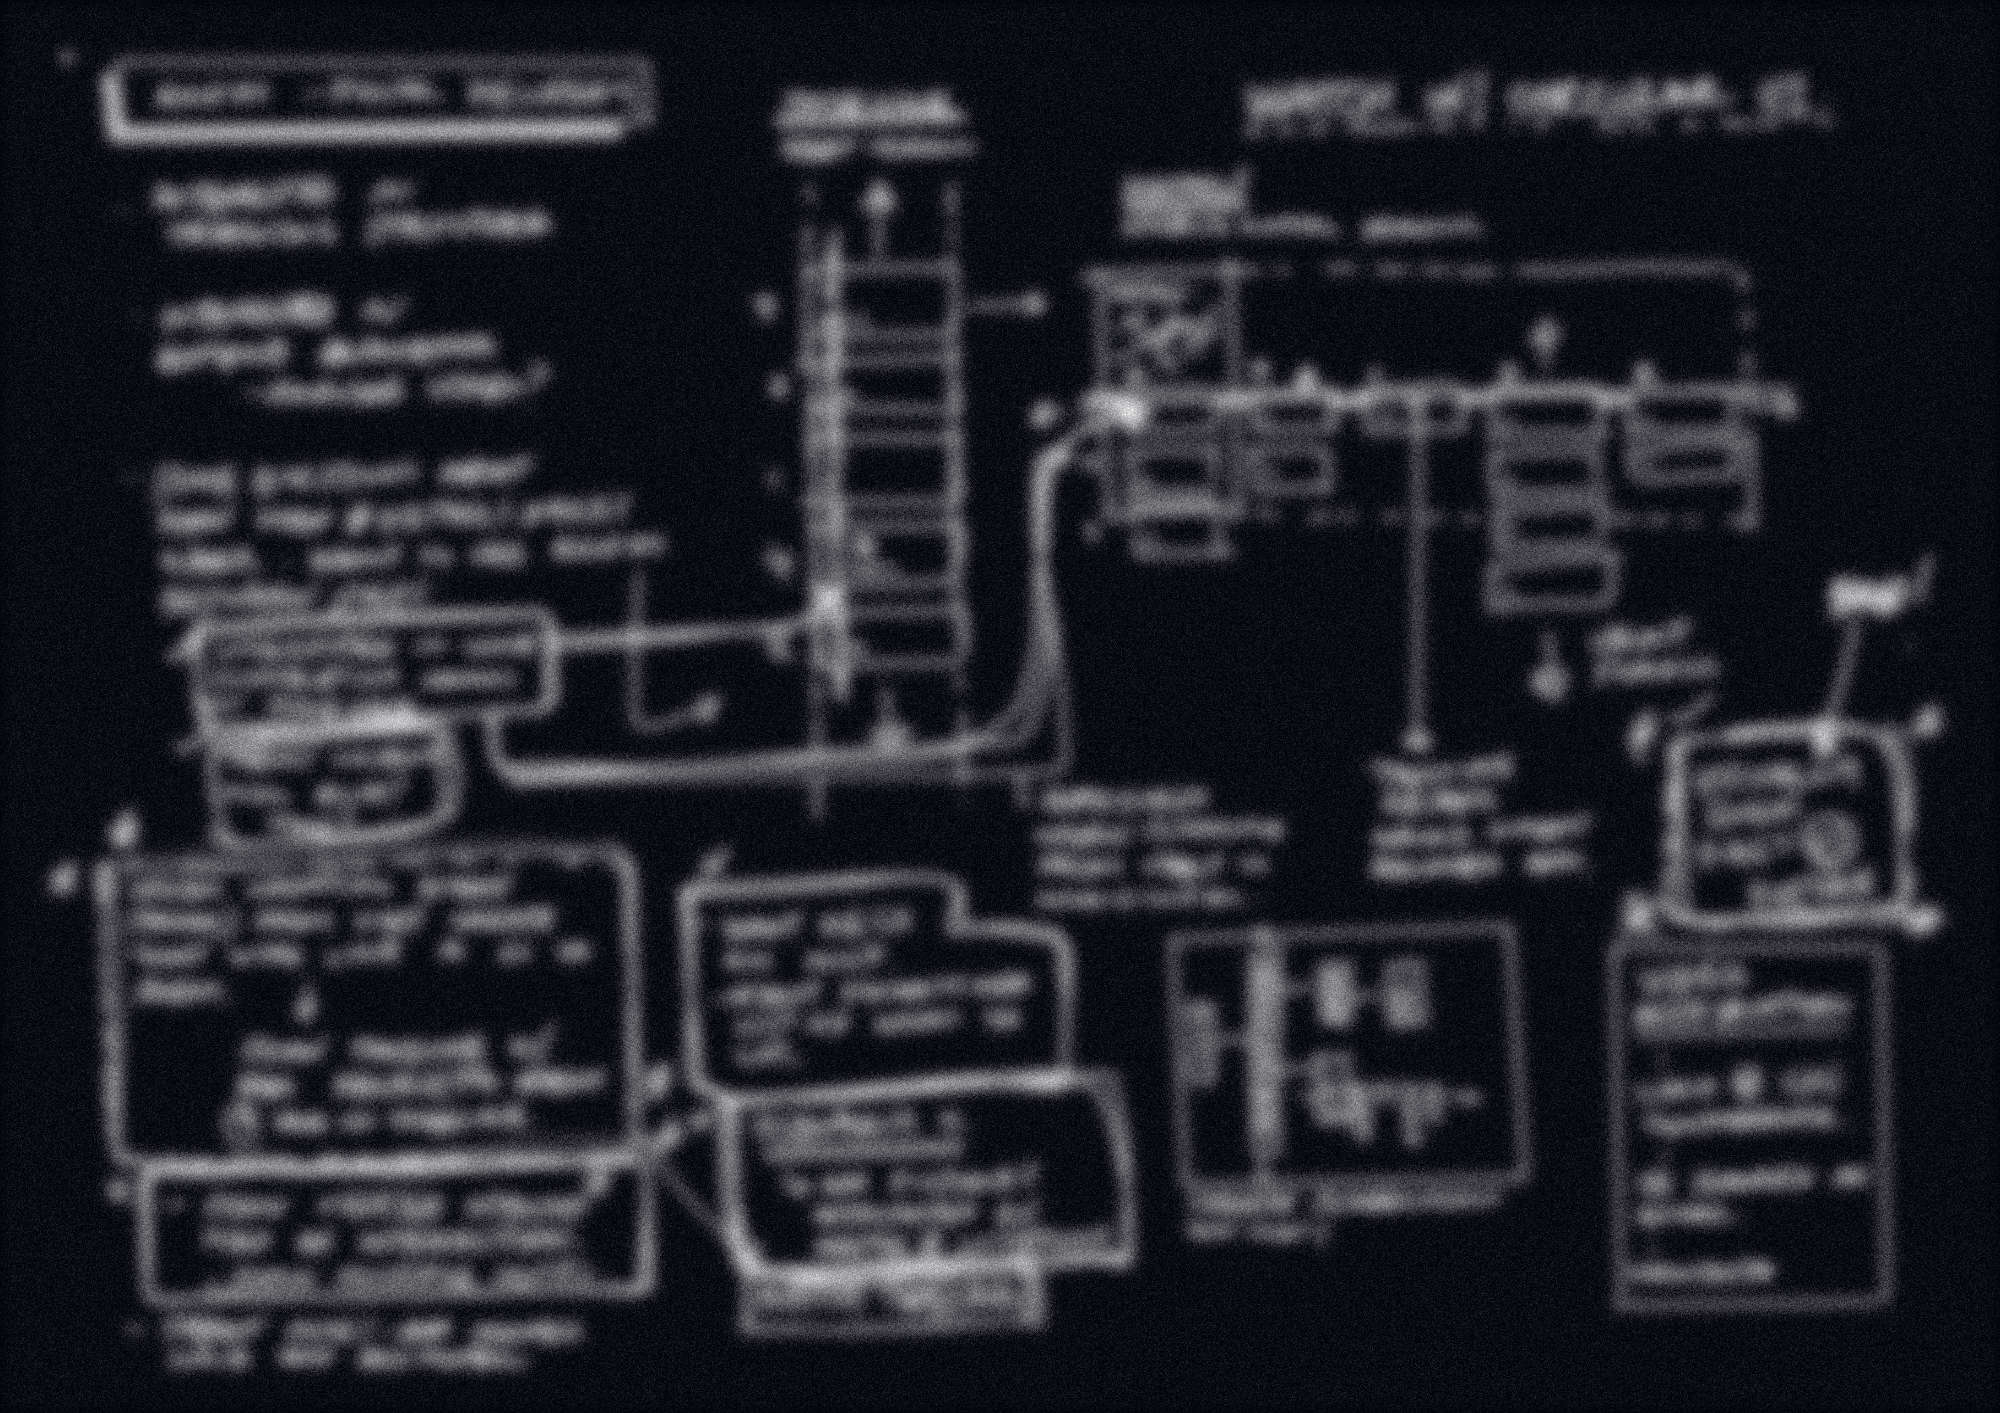 A redacted page of notes, interfaces and connective lines